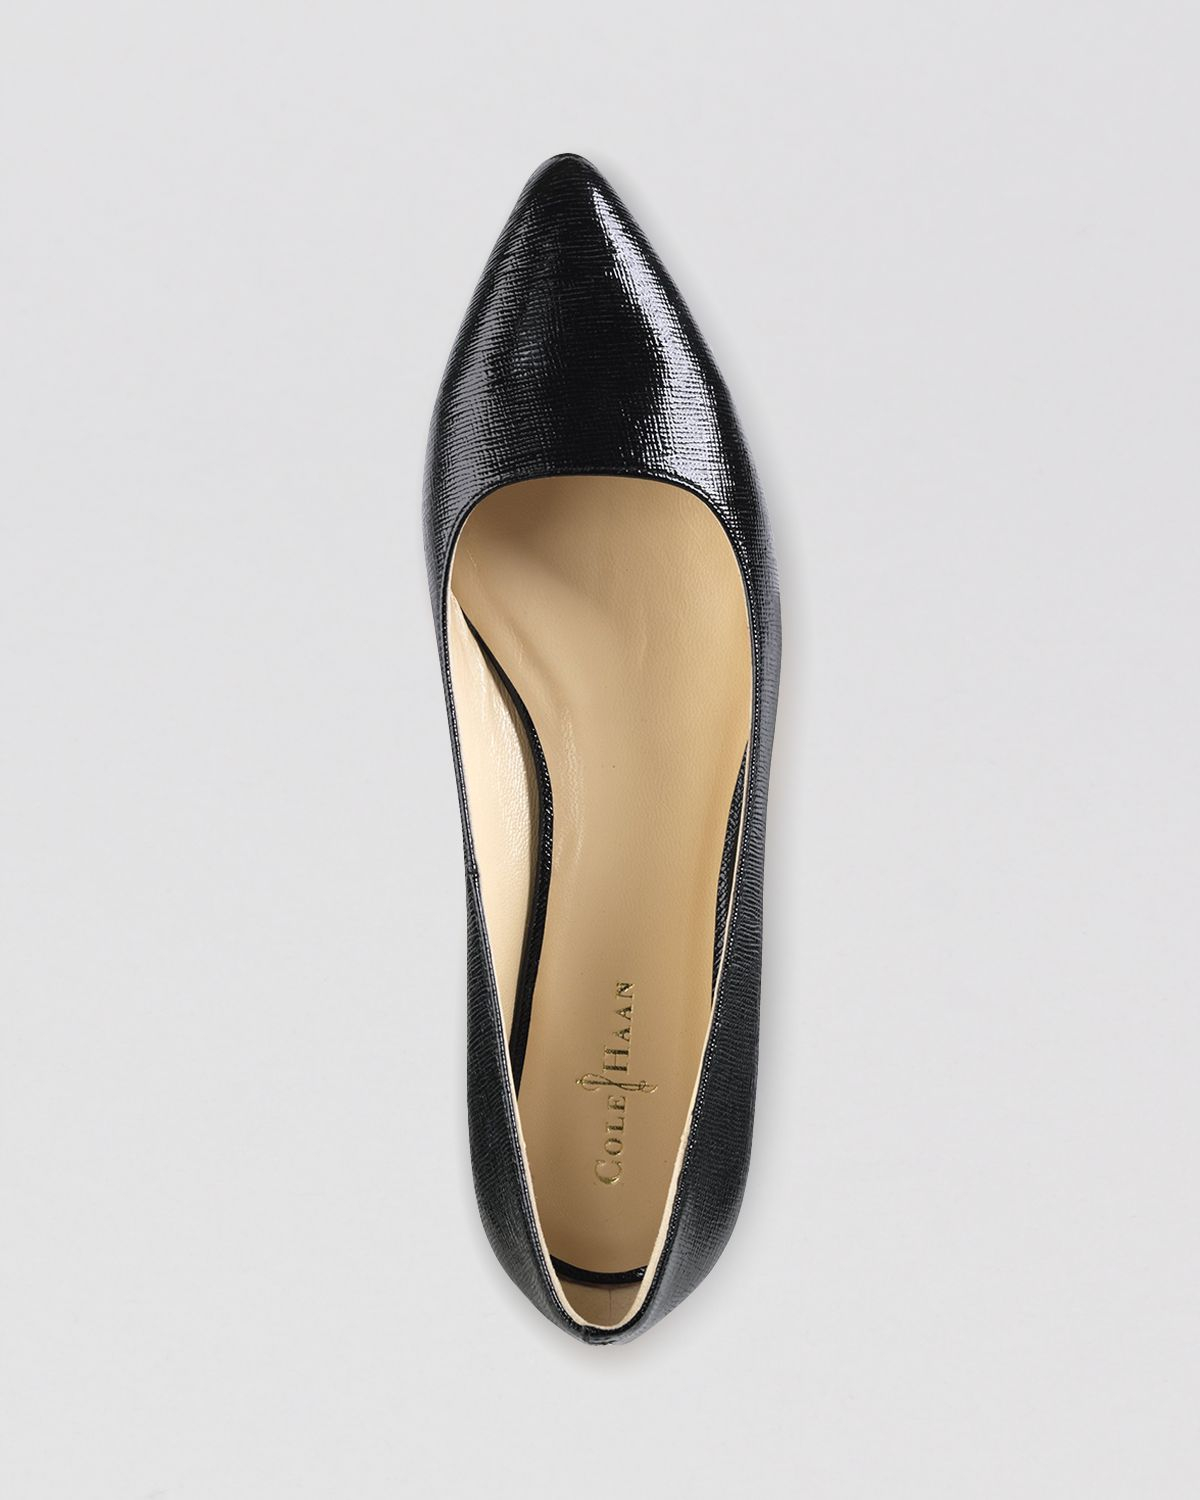 Women's Flats & Skimmers : Shoes | Cole Haan